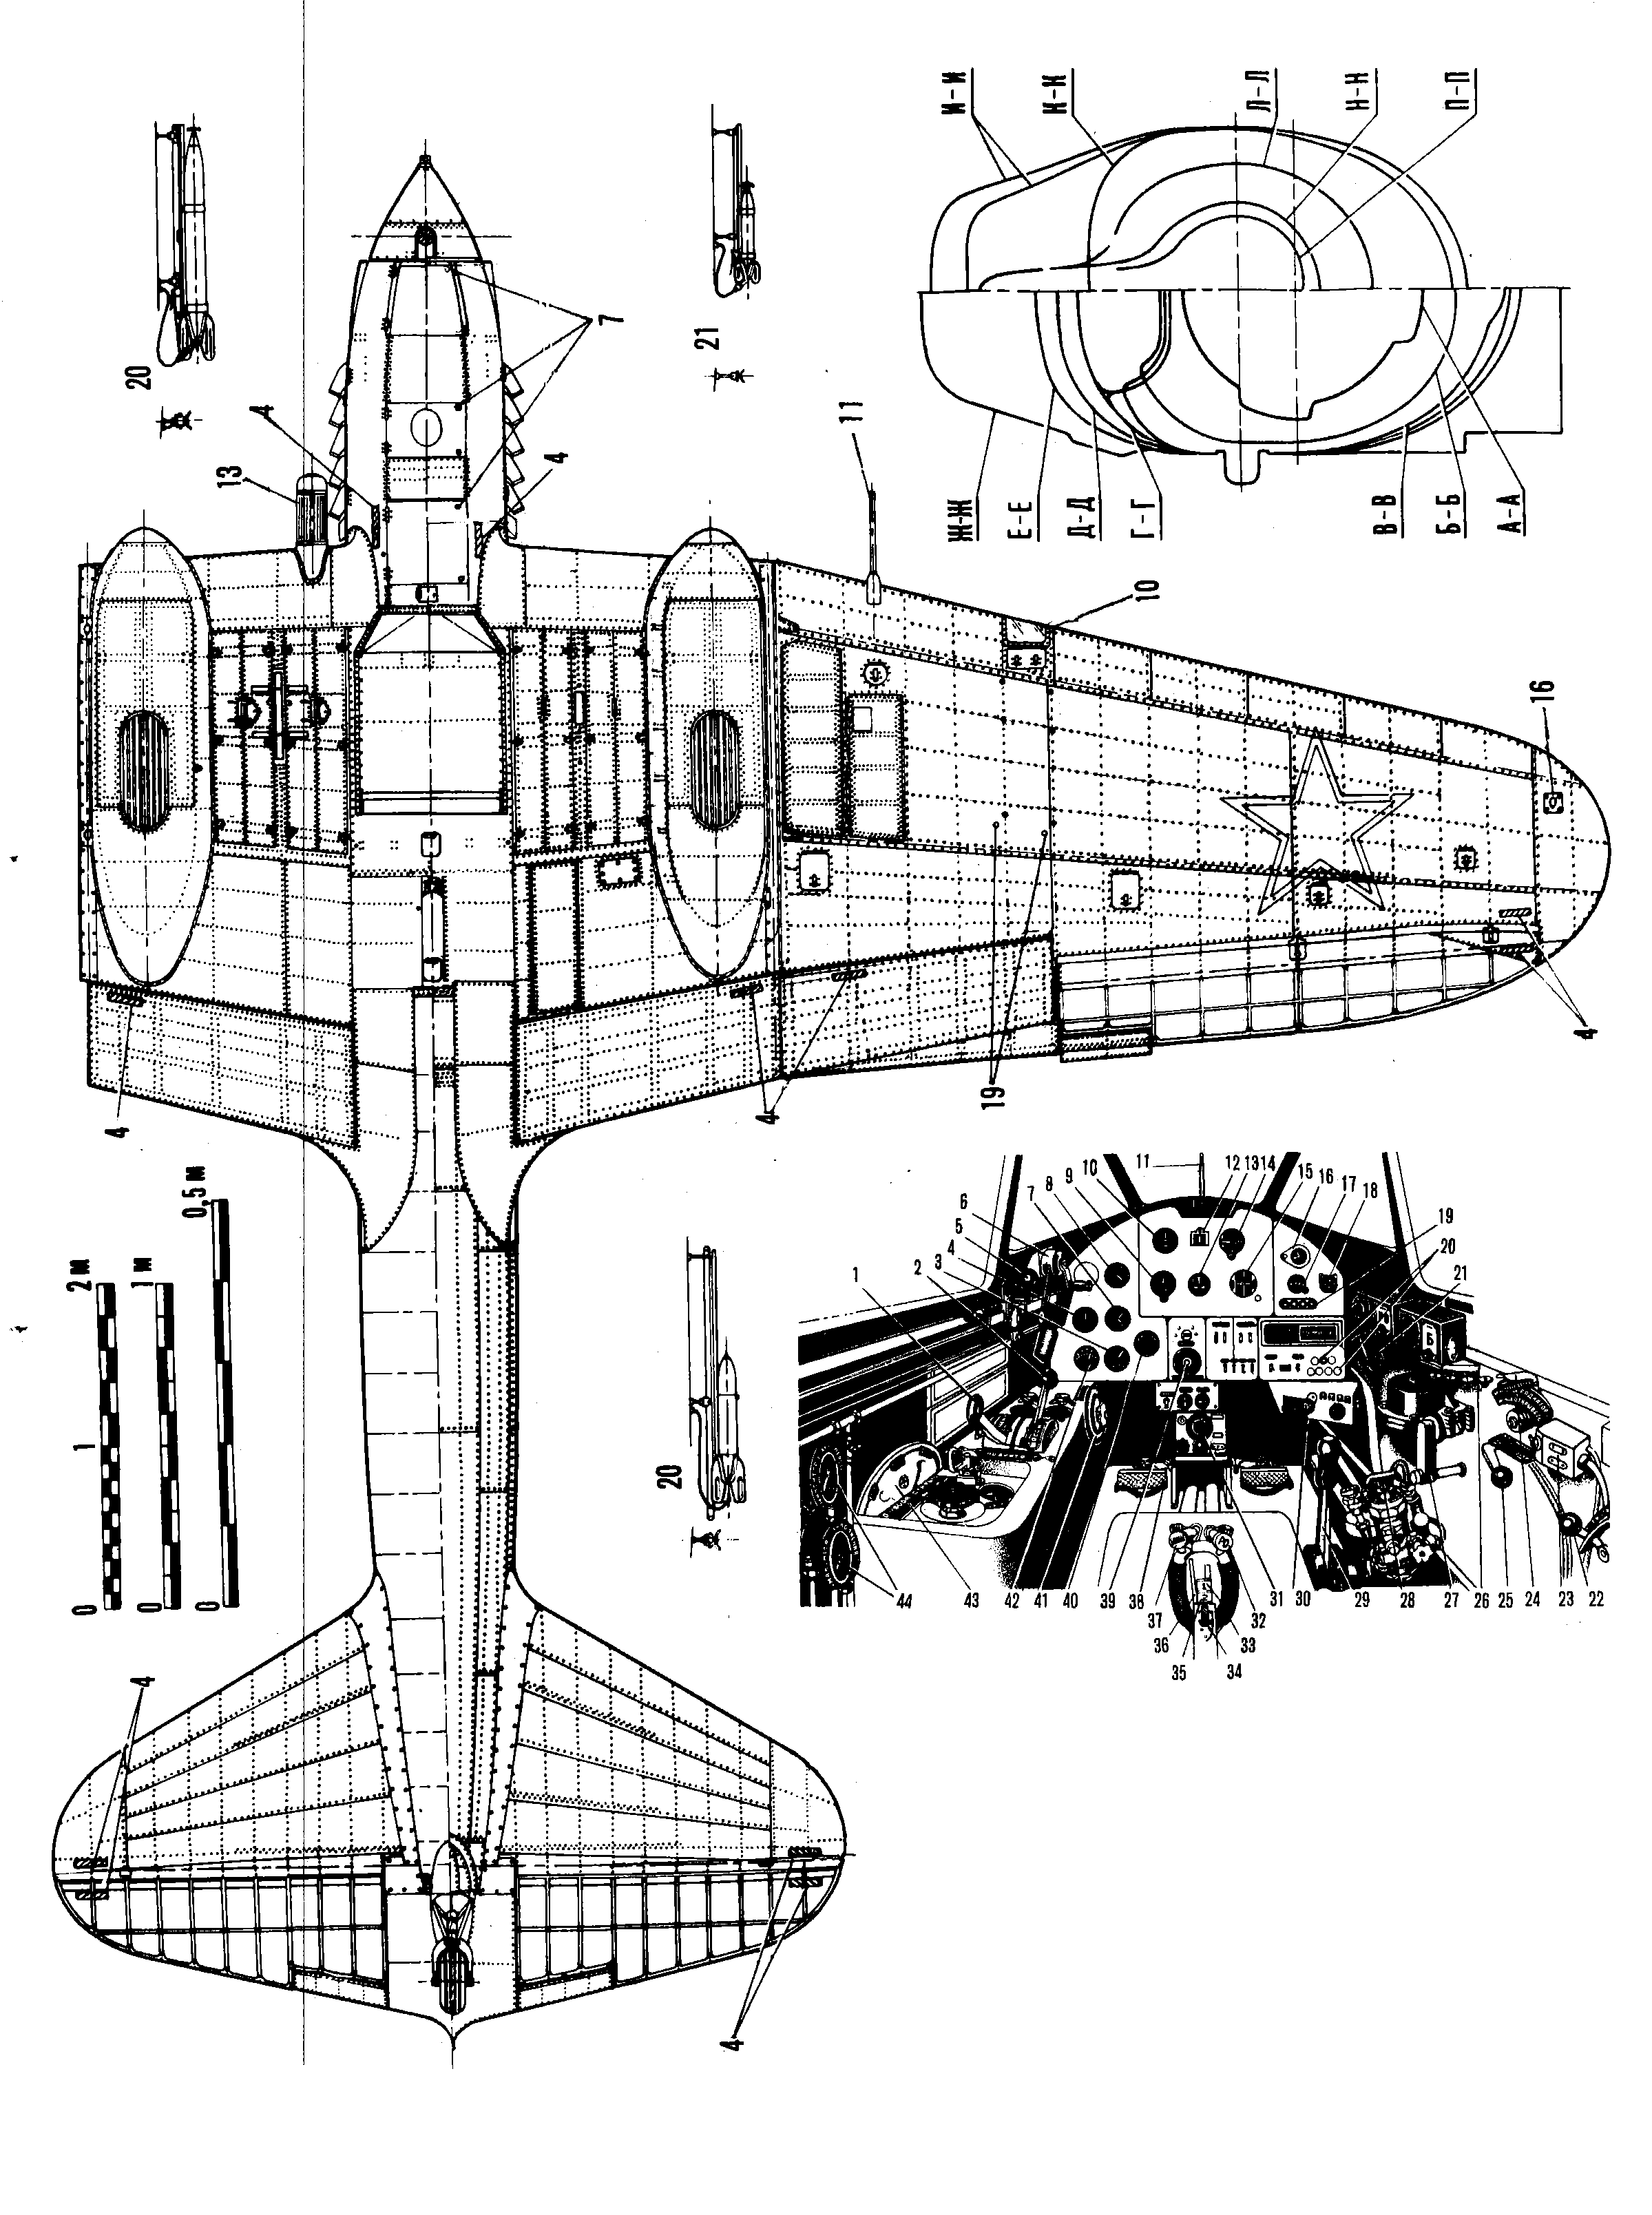 Ilyushin Il-2 blueprint